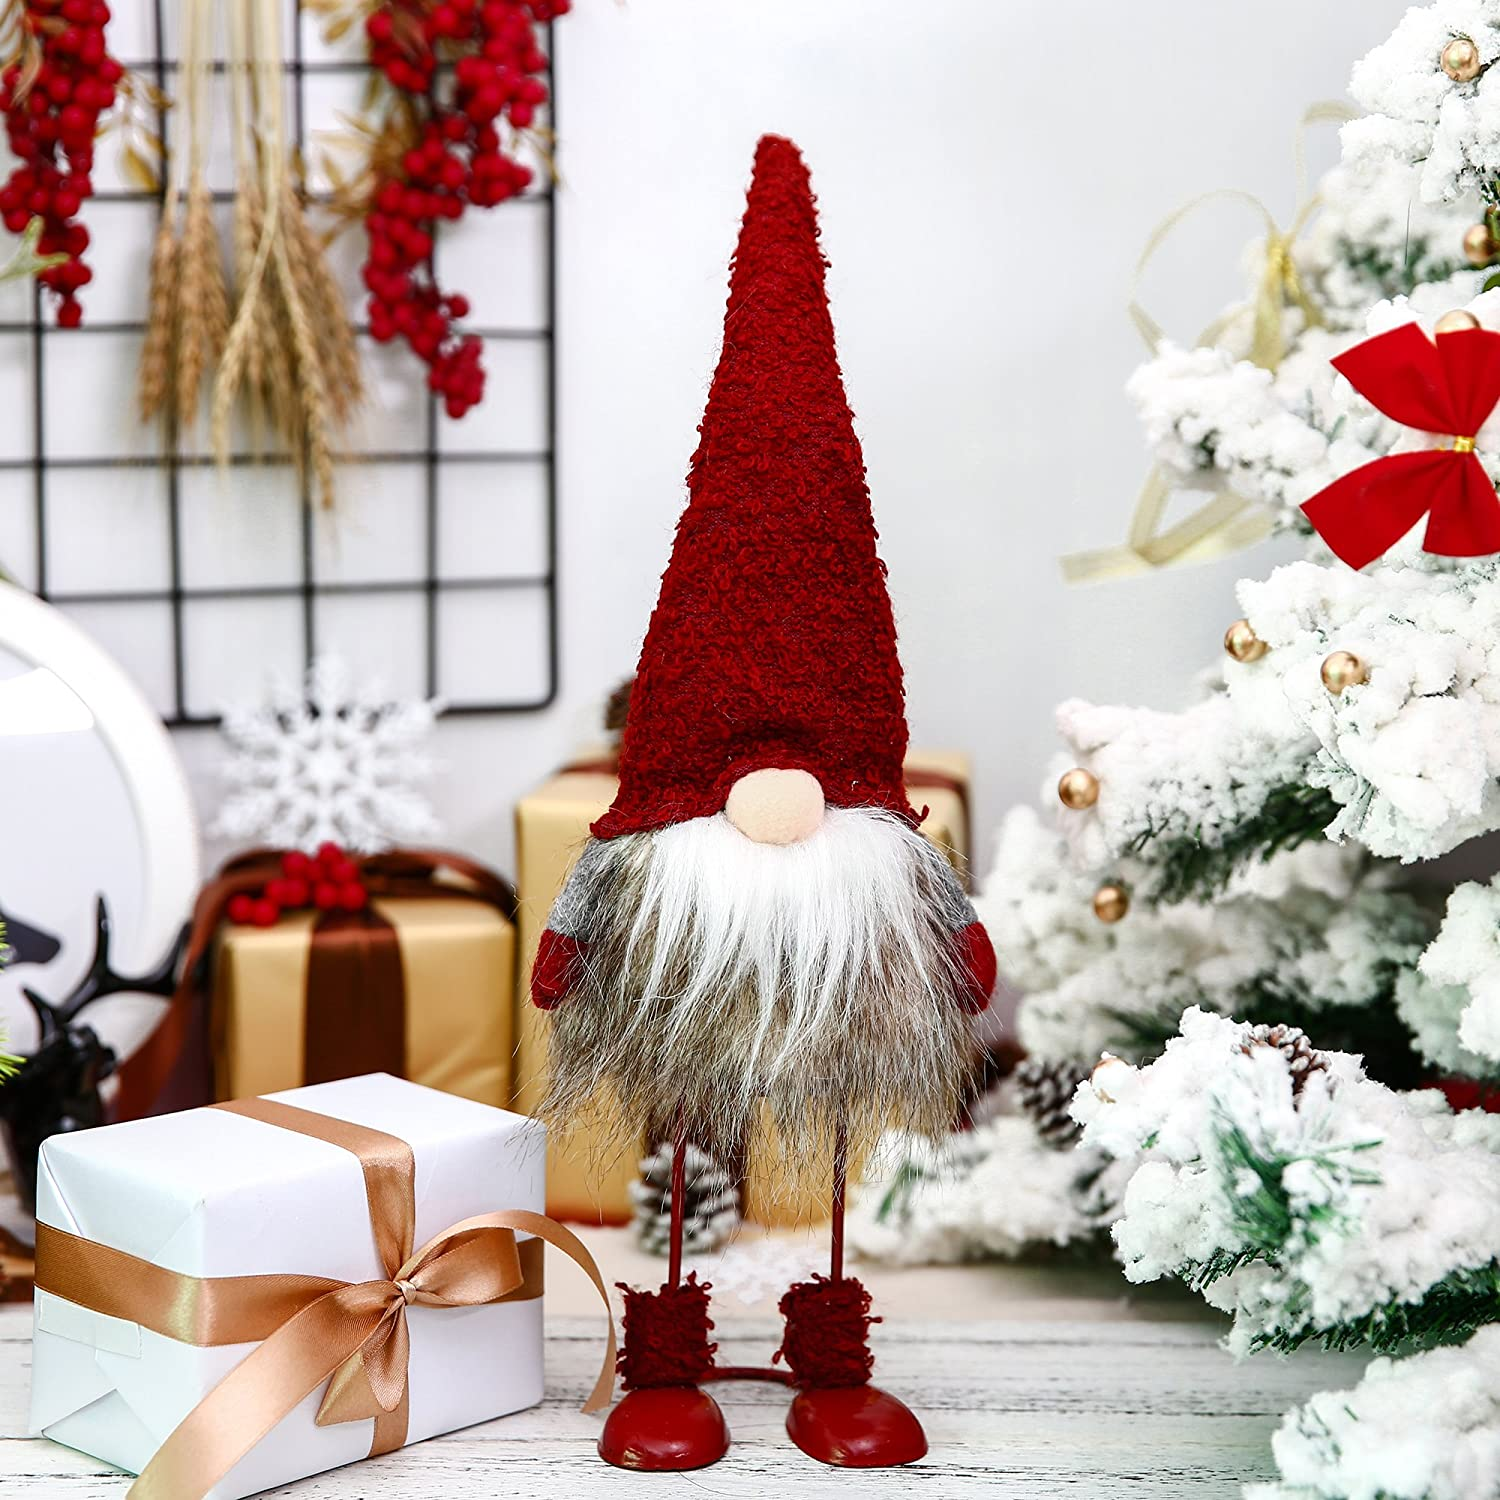 Grey Nordic Elf Figurine Easter/'s Gnome Gifts 12 Inches ITOMTE-08G Nordic Elf Figurine Easters Gnome Gifts Scandinavian Tomte Plush Toy Winter Table Ornament Decoration Yule Santa Nisse 12 Inches ITOMTE Handmade Swedish Gnome